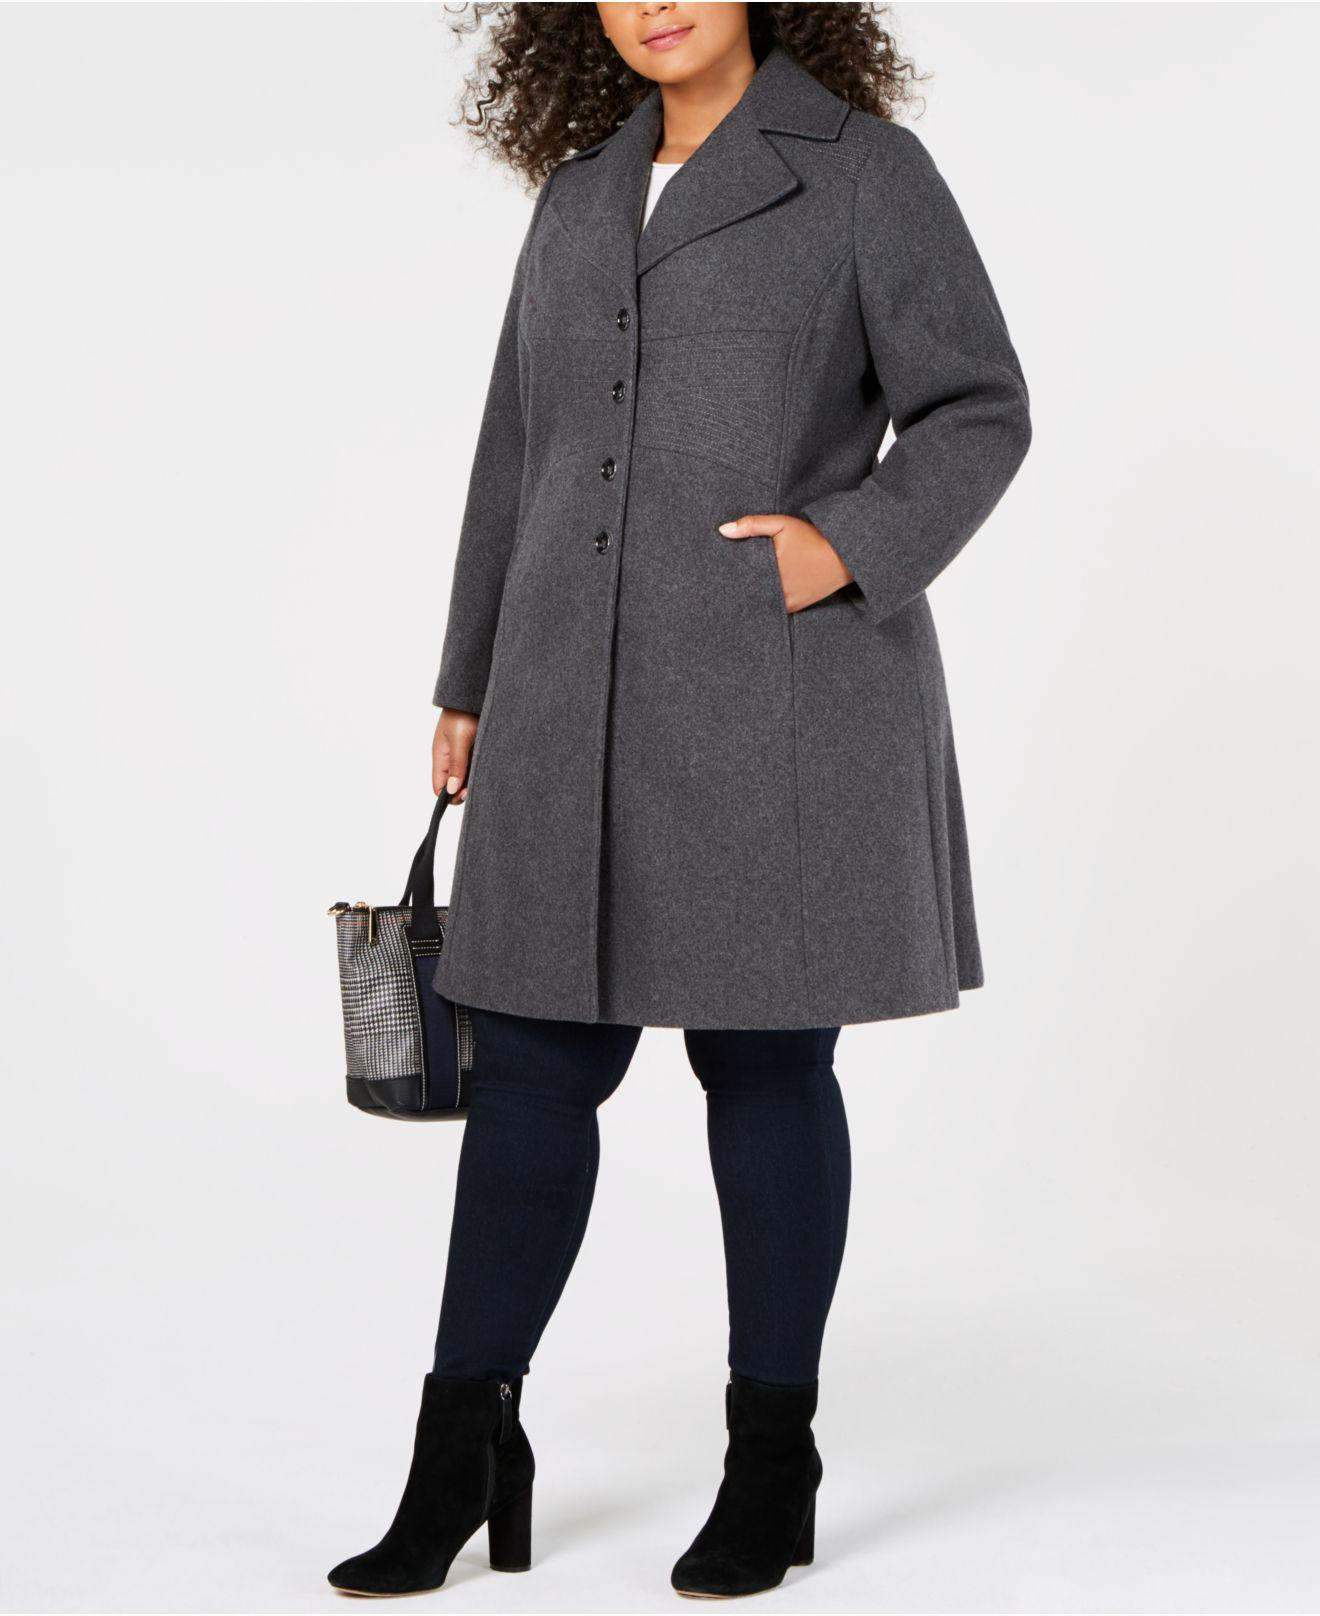 ab6ec0a03a43c Lyst - Tommy Hilfiger Plus Size Single-breasted Coat in Gray - Save ...